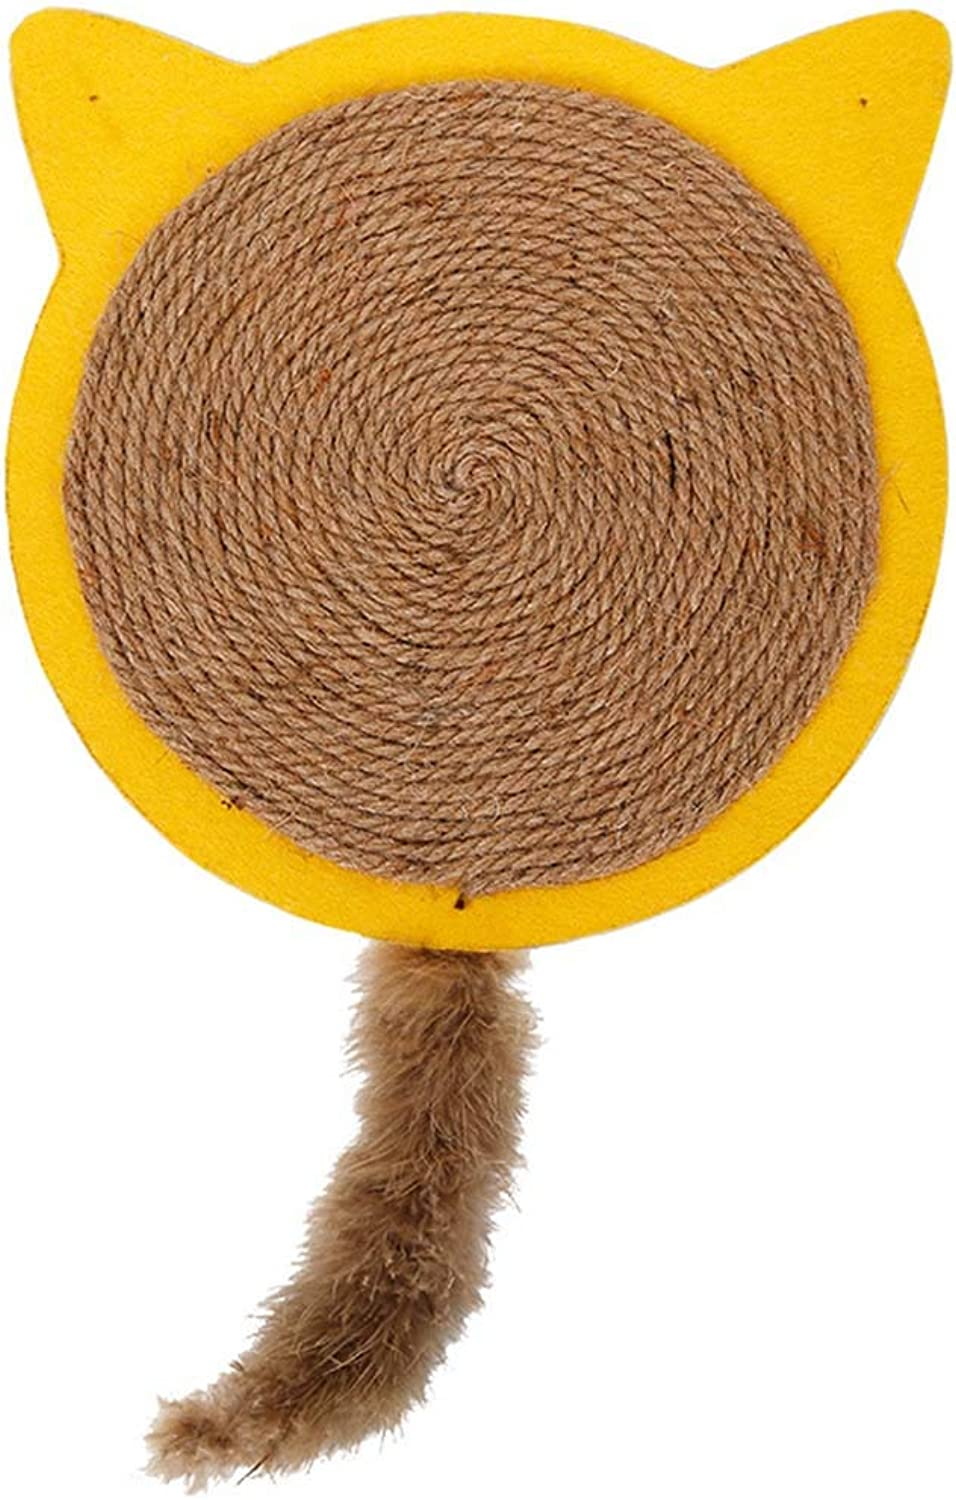 Cat Scratch Board Kitty Scrathing Mat Natural Sisal Elk Antler Cat Tail Toys Grinding Claw Carpet Pet Supplies Training Scratch Resistant,Yellow